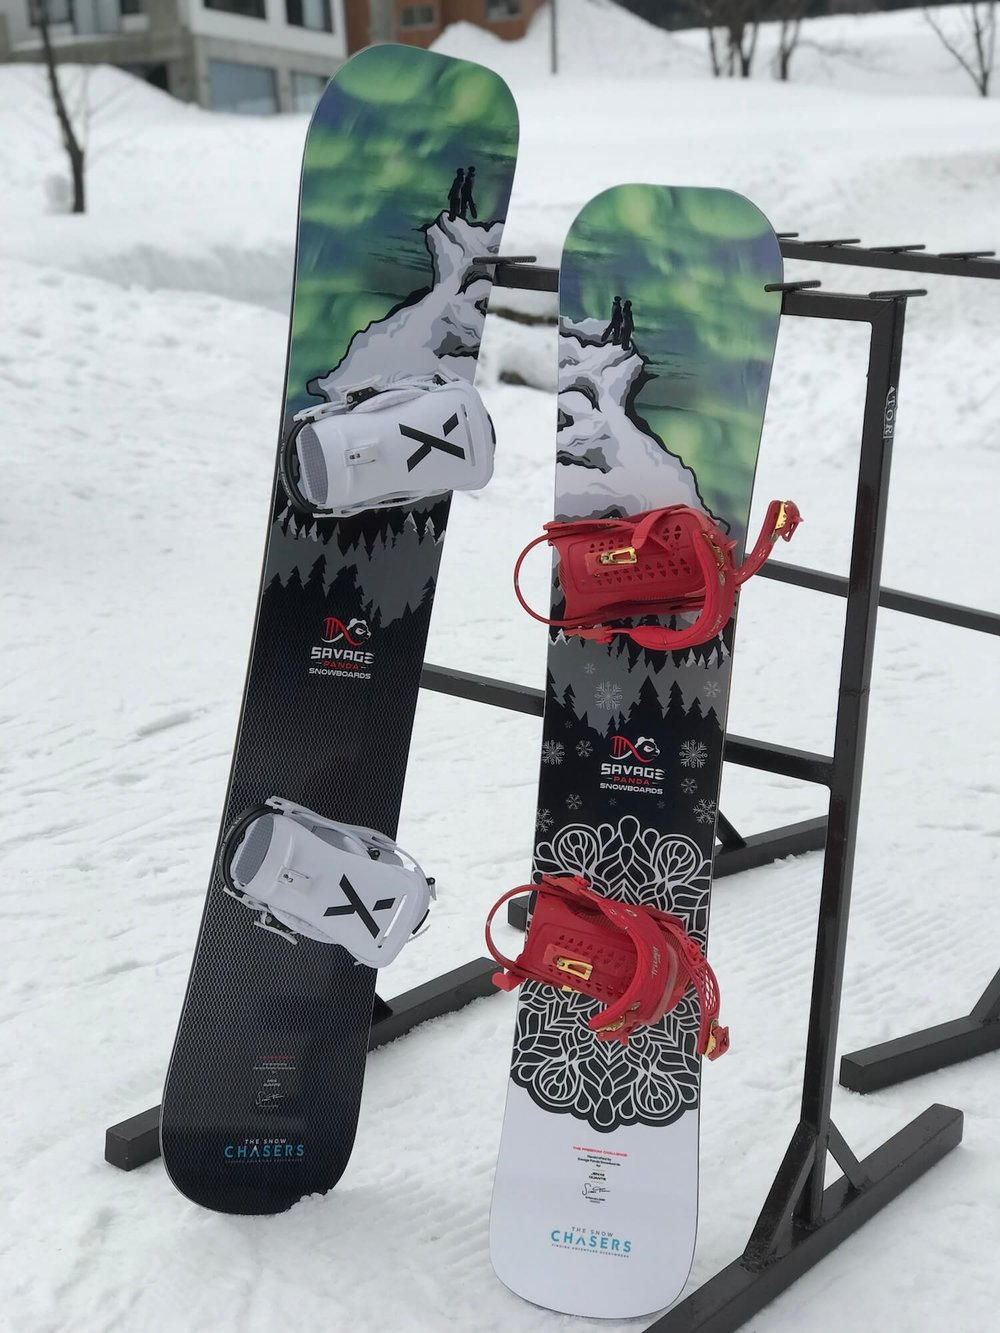 Savage Panda and The Snow Chasers snowboards on rack